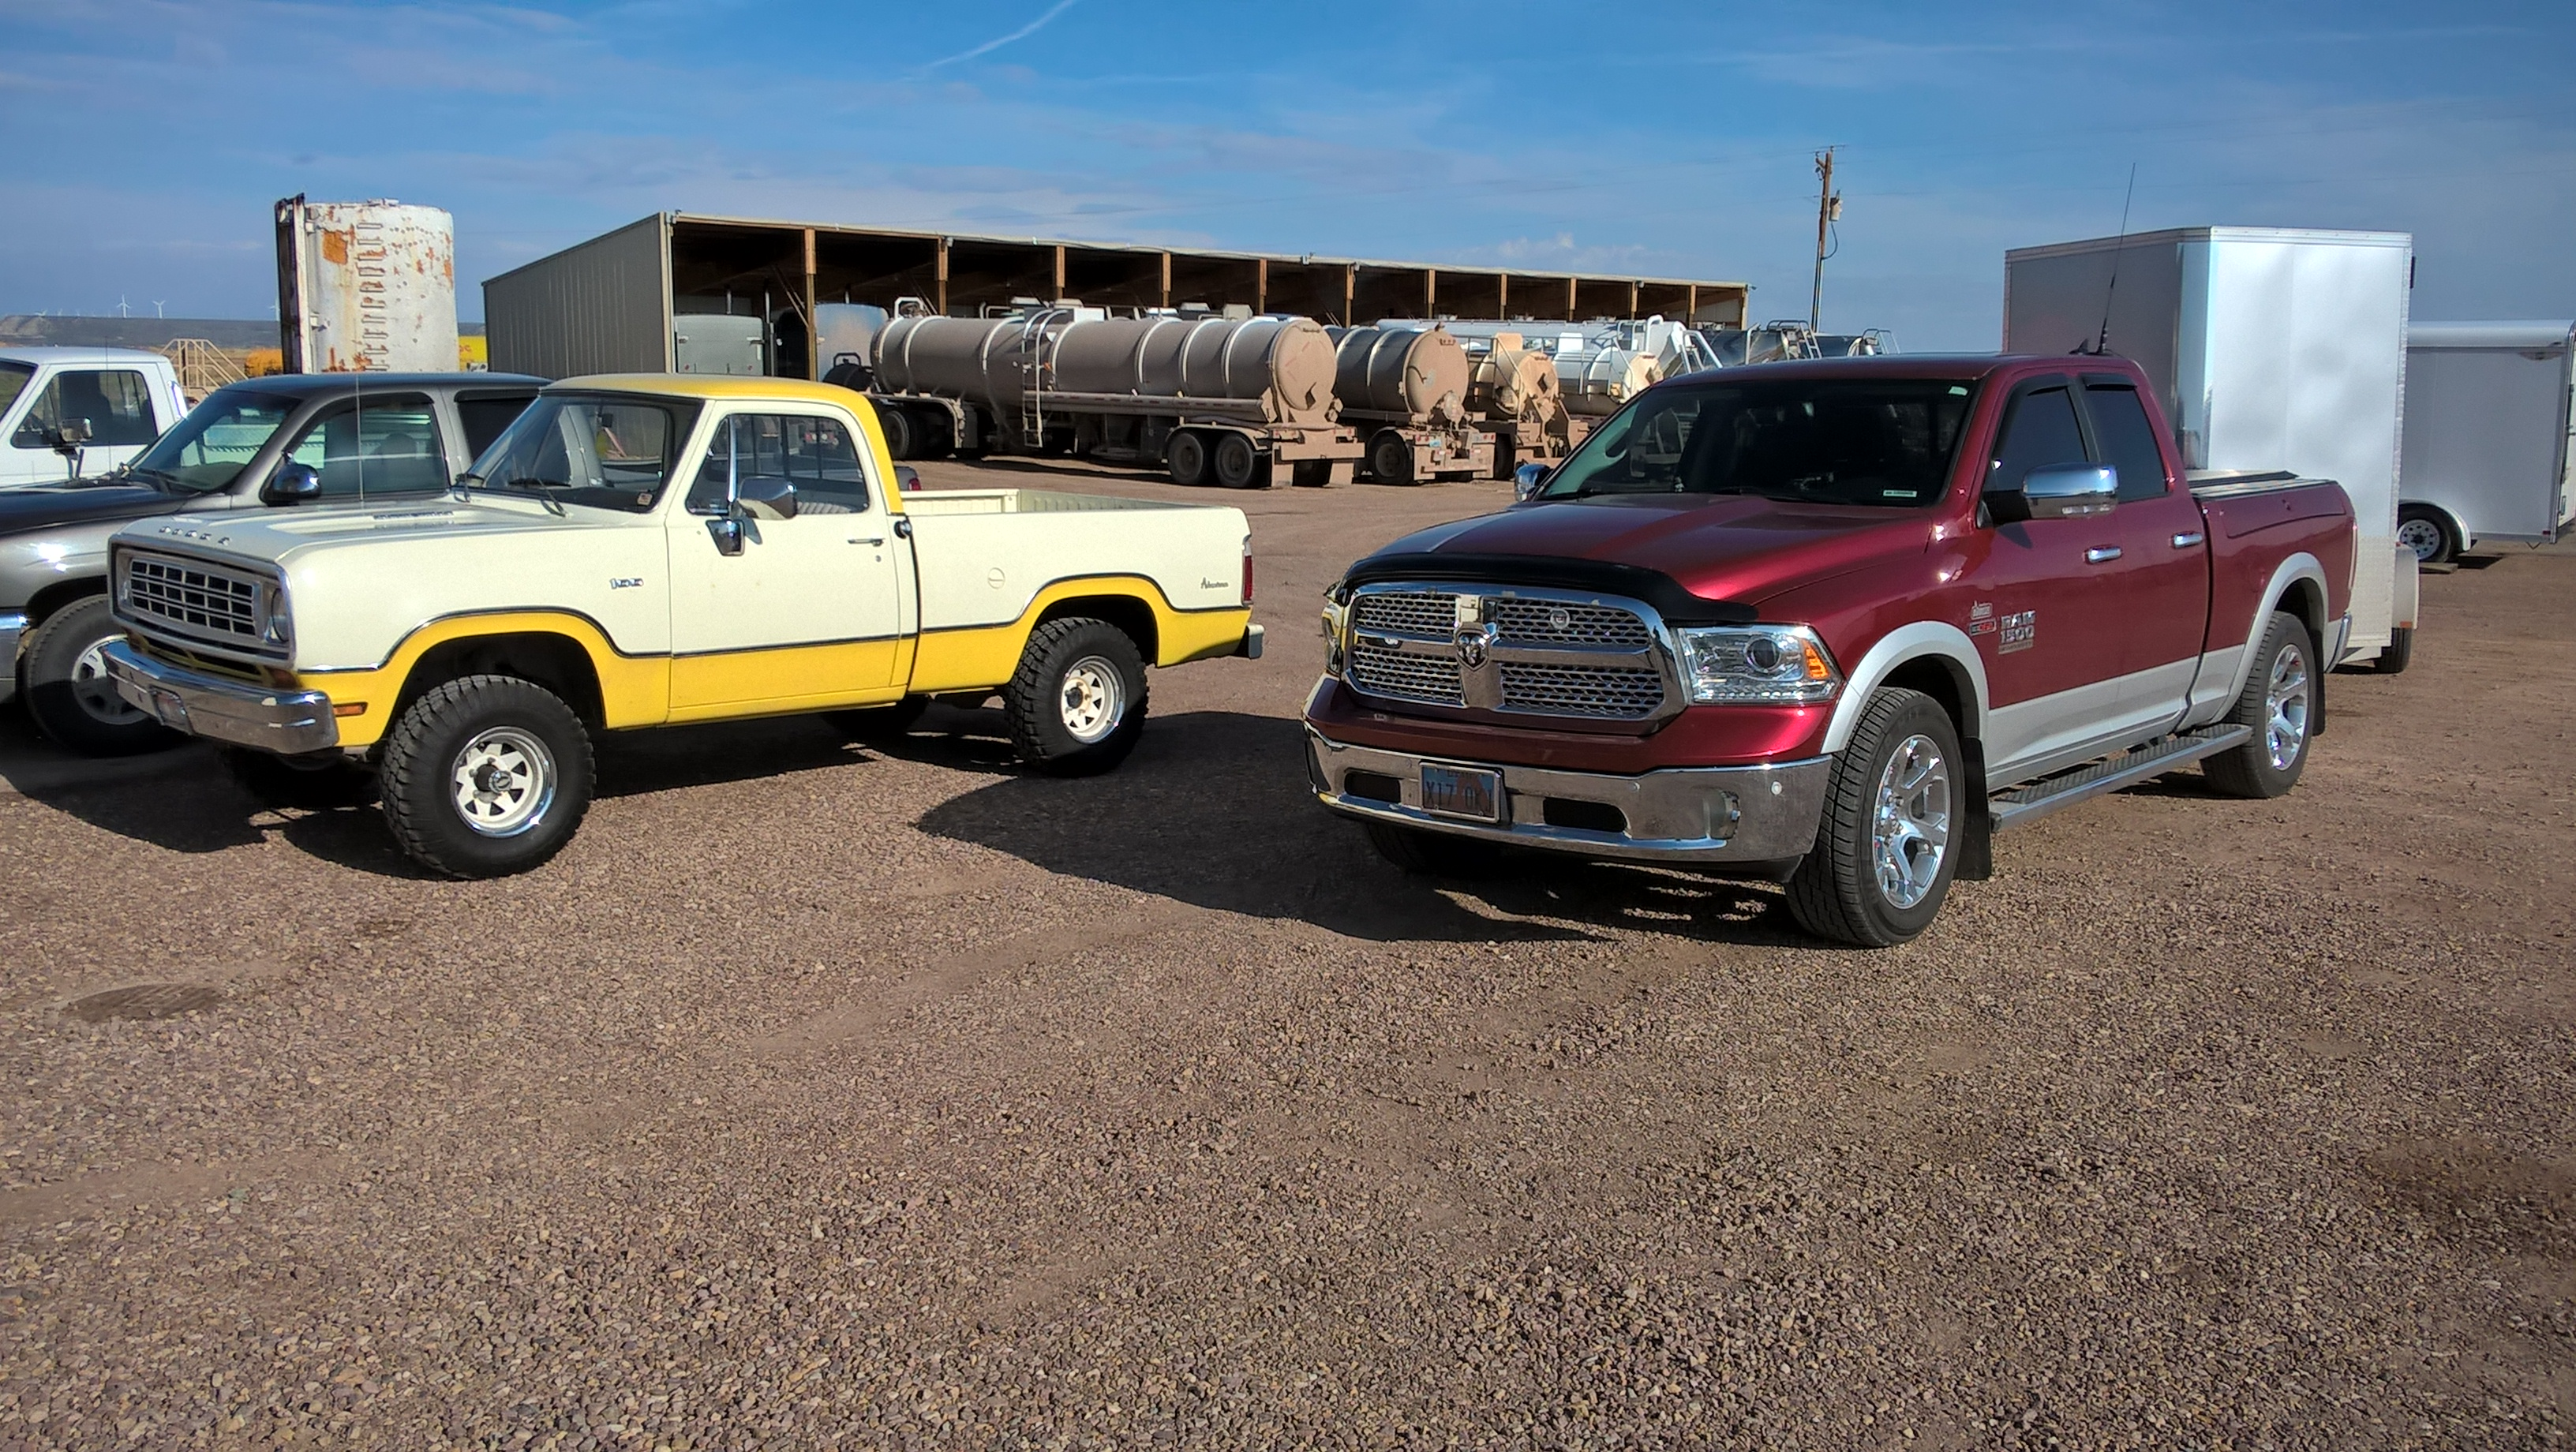 1983 Dodge Power Ram W350 Crew Cab Short Bed $9637 - Page 2